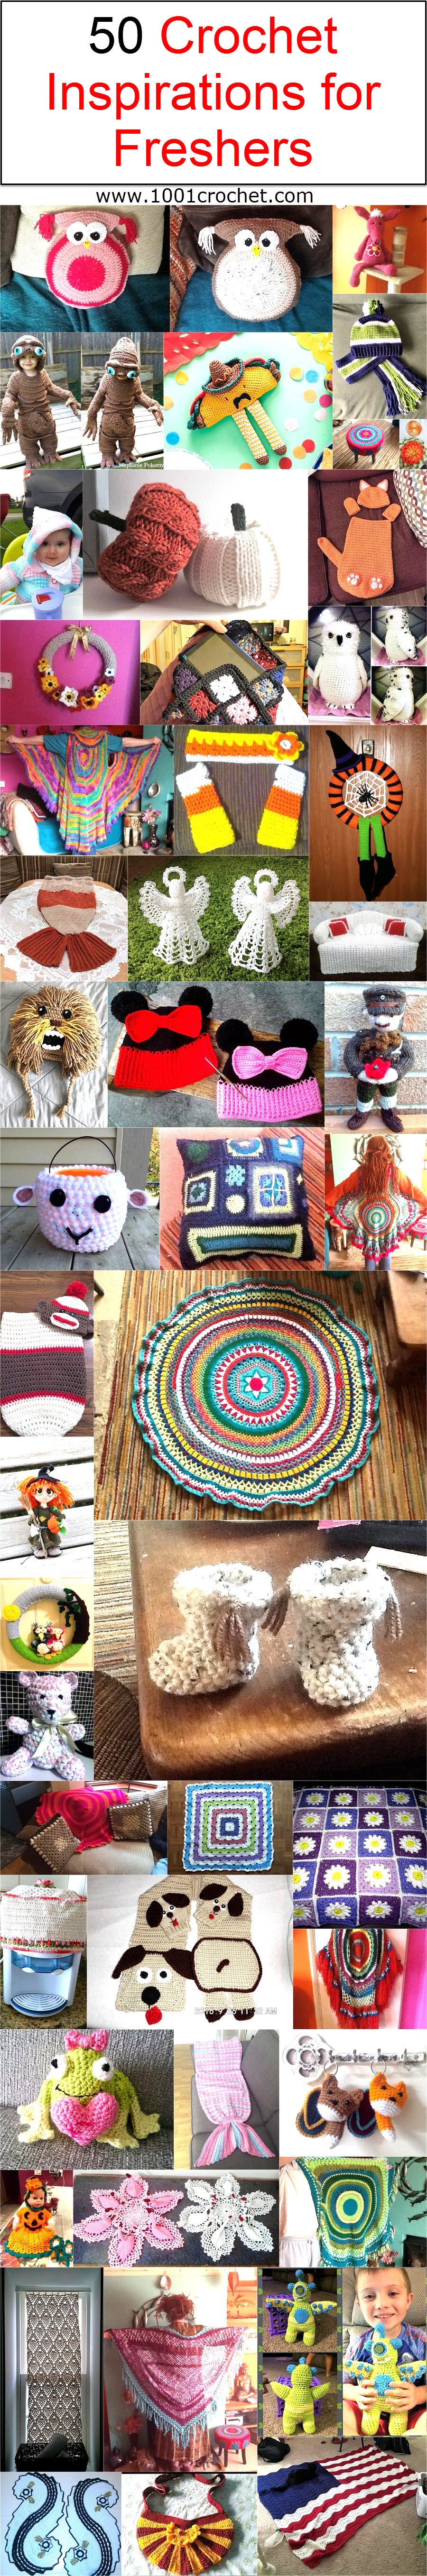 50-crochet-inspirations-for-freshers